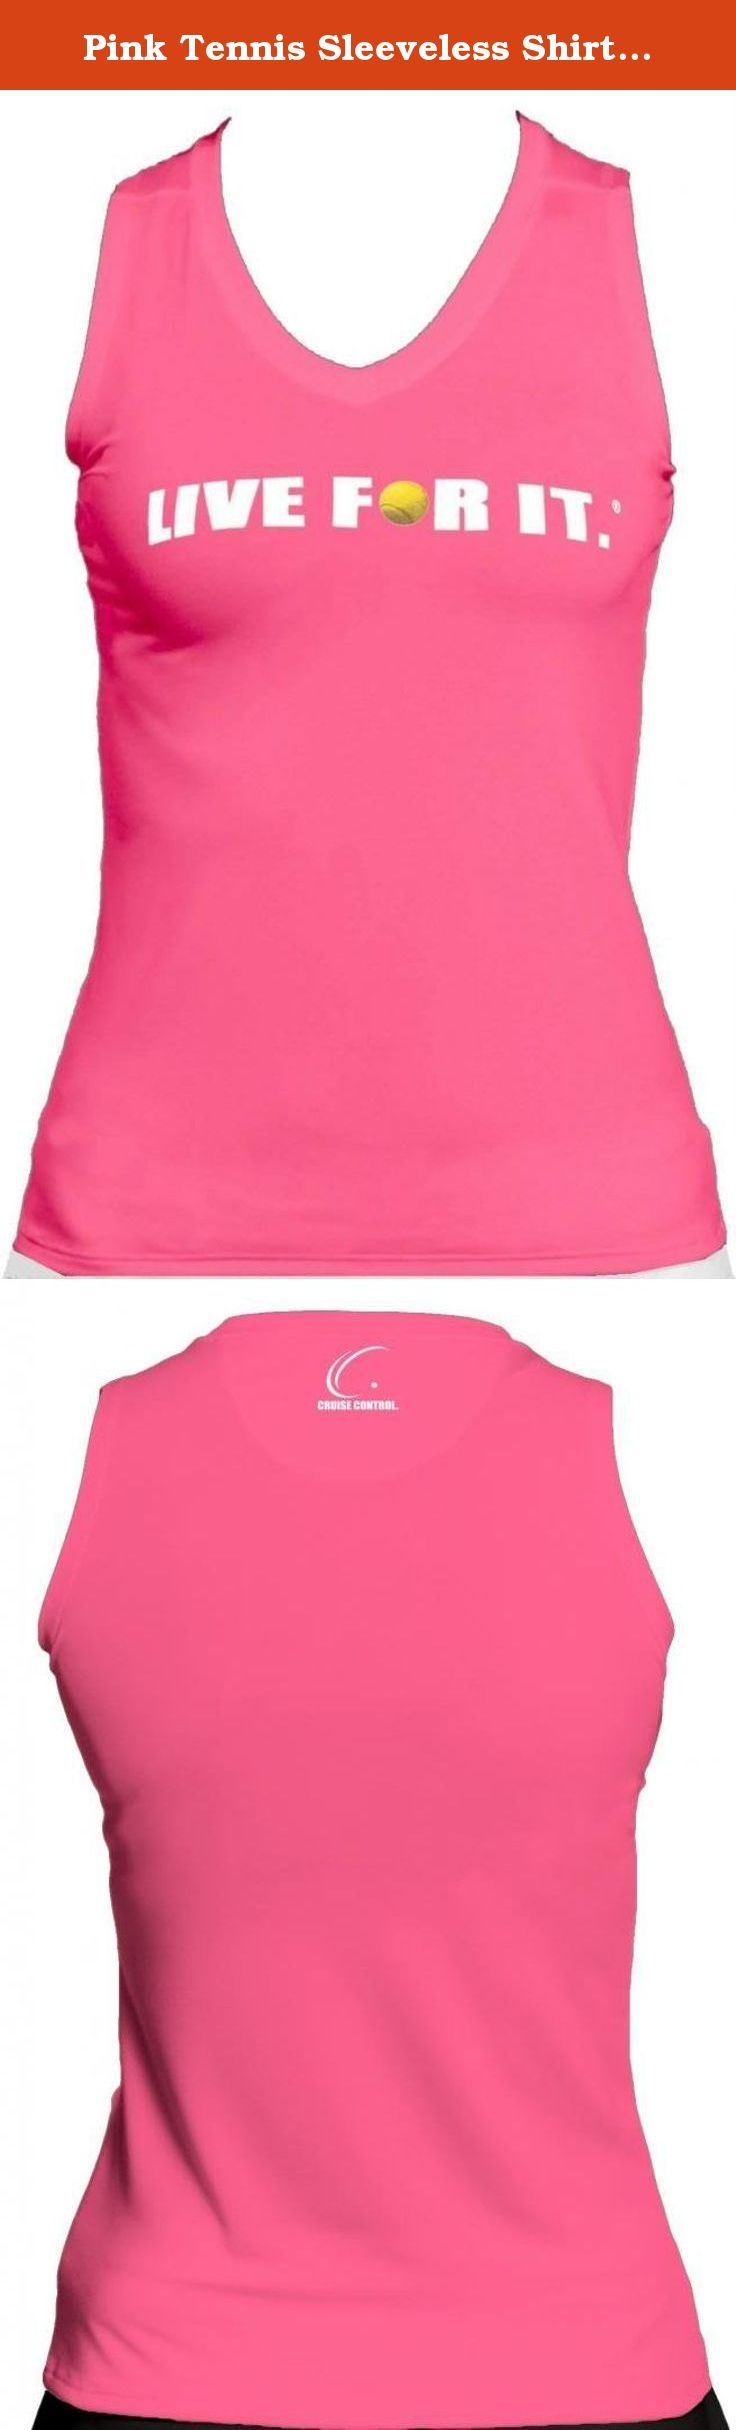 Pink Tennis Sleeveless Shirt Live For It Athletic Performance, Cruise Control Gear, Size XX-LARGE. Cruise Control's comfortable LIVE FOR IT.® tennis performance tee is designed with a contoured fit to compliment your every curve. This soft antibacterial and moisture management fitted tee is made with moisture wicking technology that absorbs the moisture and perspiration from the skin and transports it quickly through the fabric for fast evaporation. The material's antibacterial...